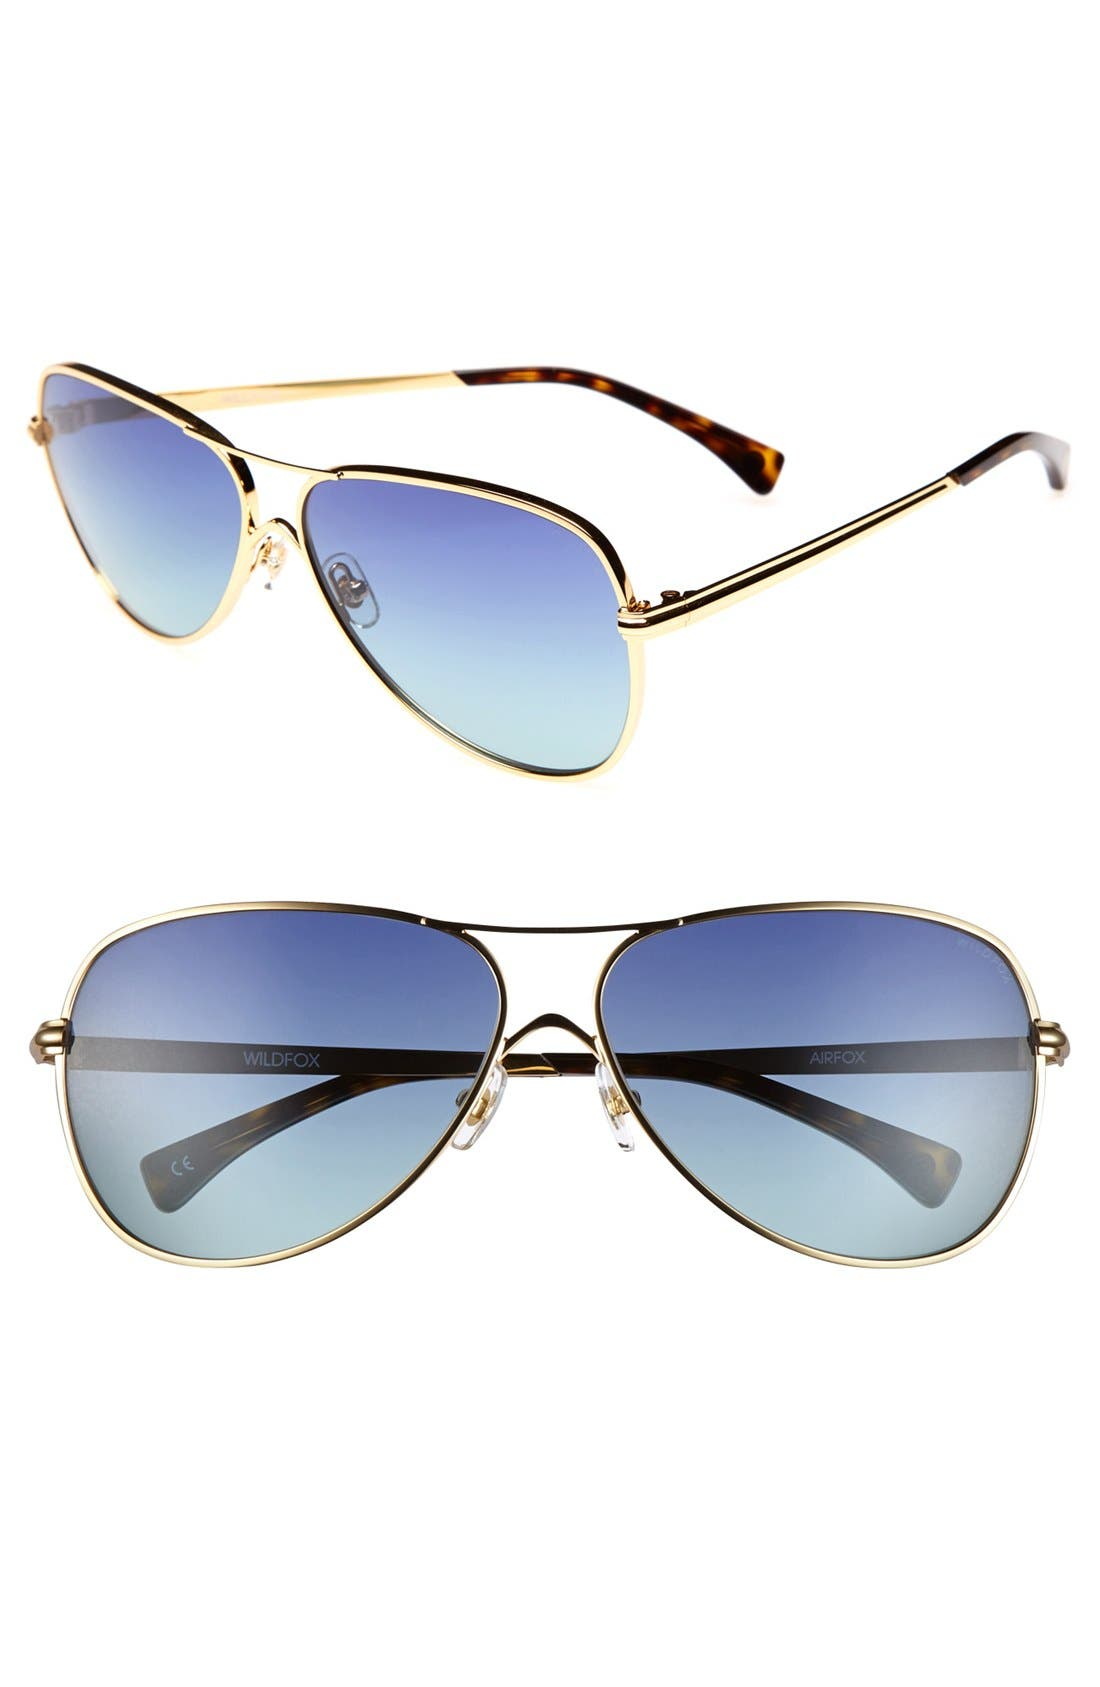 Alternate Image 1 Selected - Wildfox 'Airfox' 57mm Sunglasses